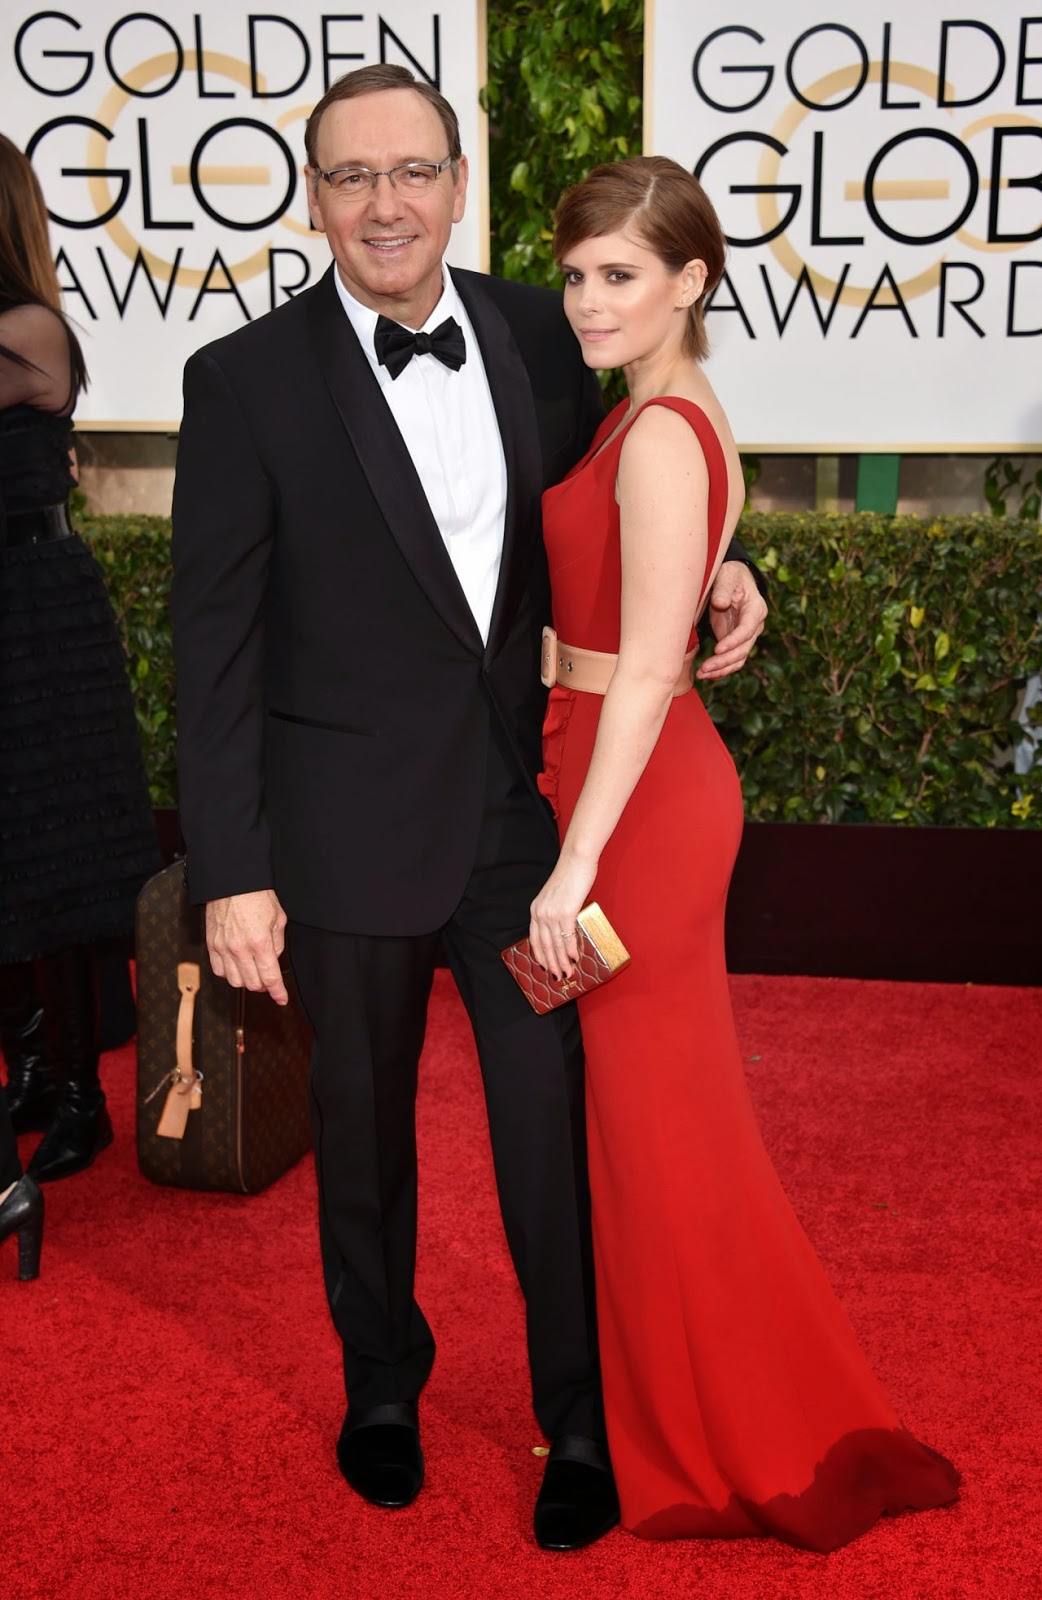 Kate Mara sizzles in a Miu Miu dress at the 2015 Golden Globes